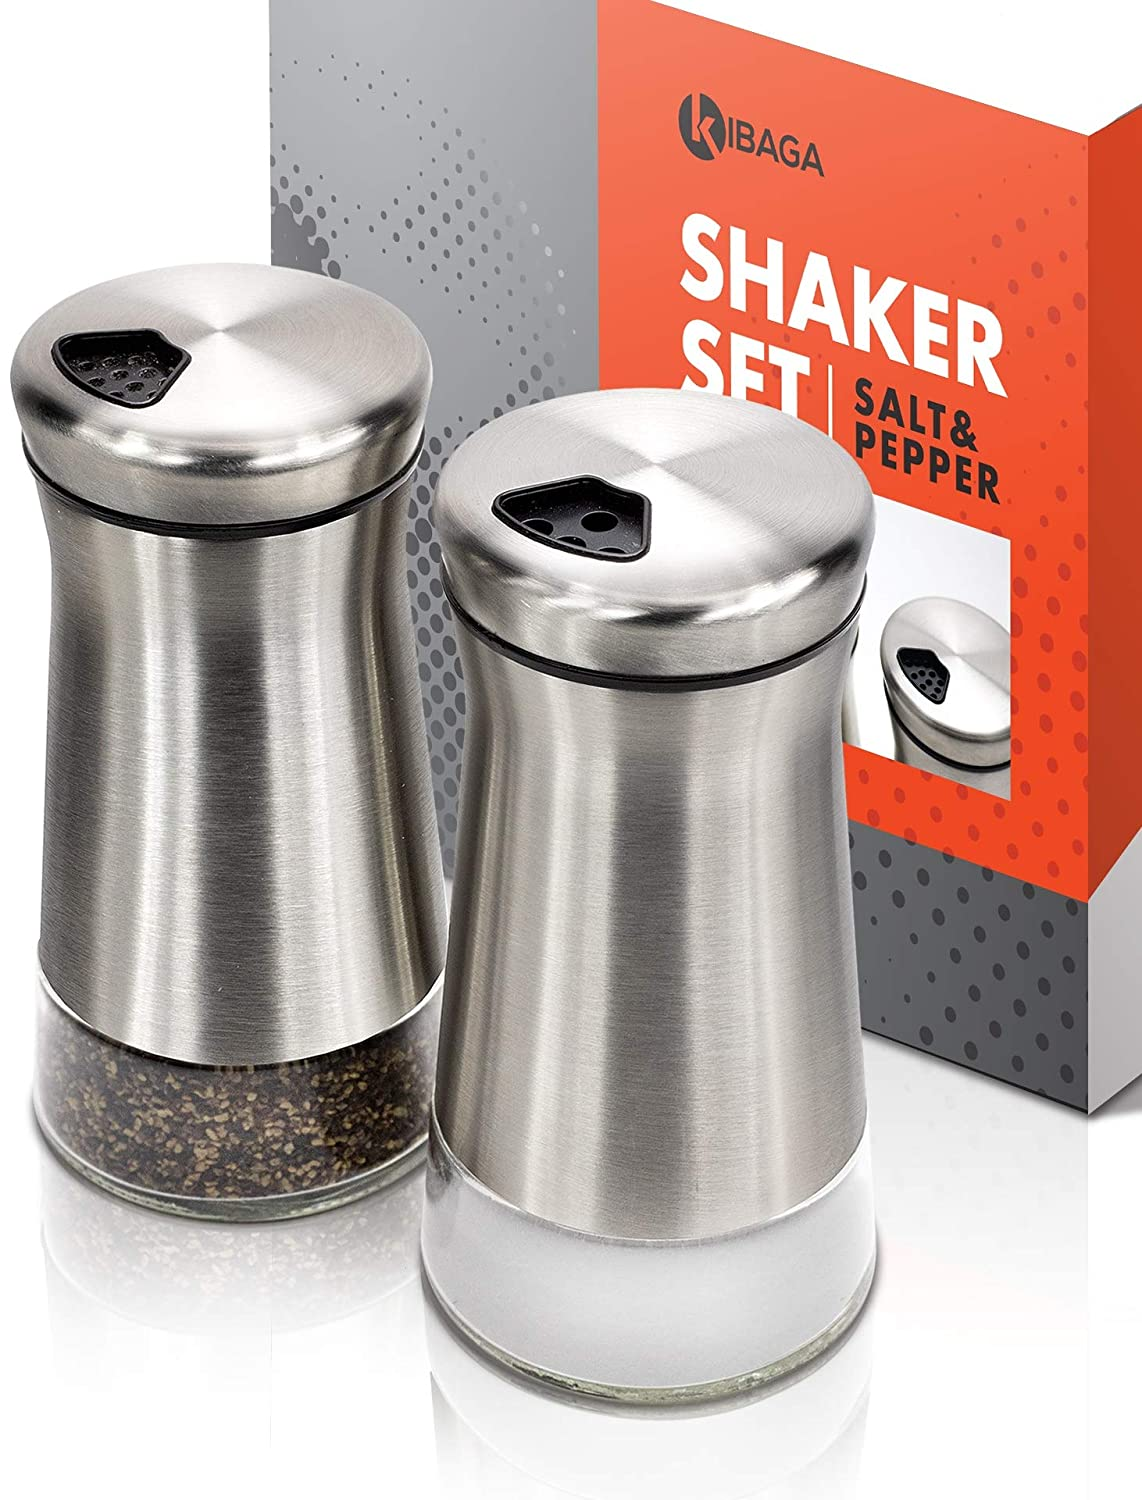 Elegant Salt and Pepper Shakers With Adjustable Pour Holes Gorgeous Stainless Steel Salt and Pepper Dispenser Set Kosher Or Himalayan Salt Perfect For Your Sea